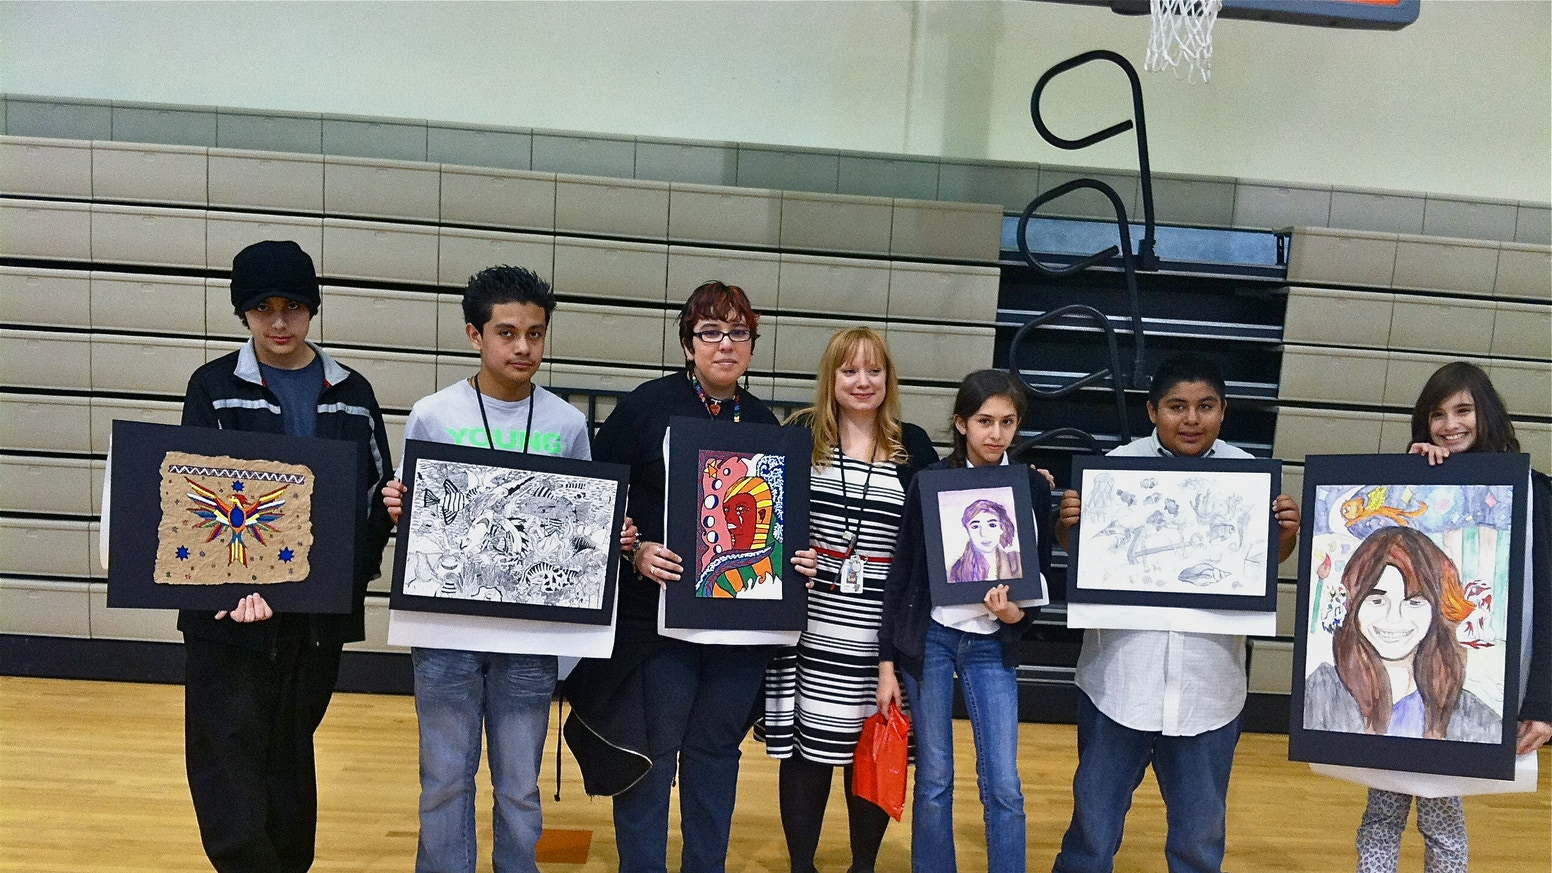 Help middle school artists compete at junior vase by jennie tudor our economically disadvantaged and at risk young artists need your help with funding for their junior vase competition entry fees reviewsmspy